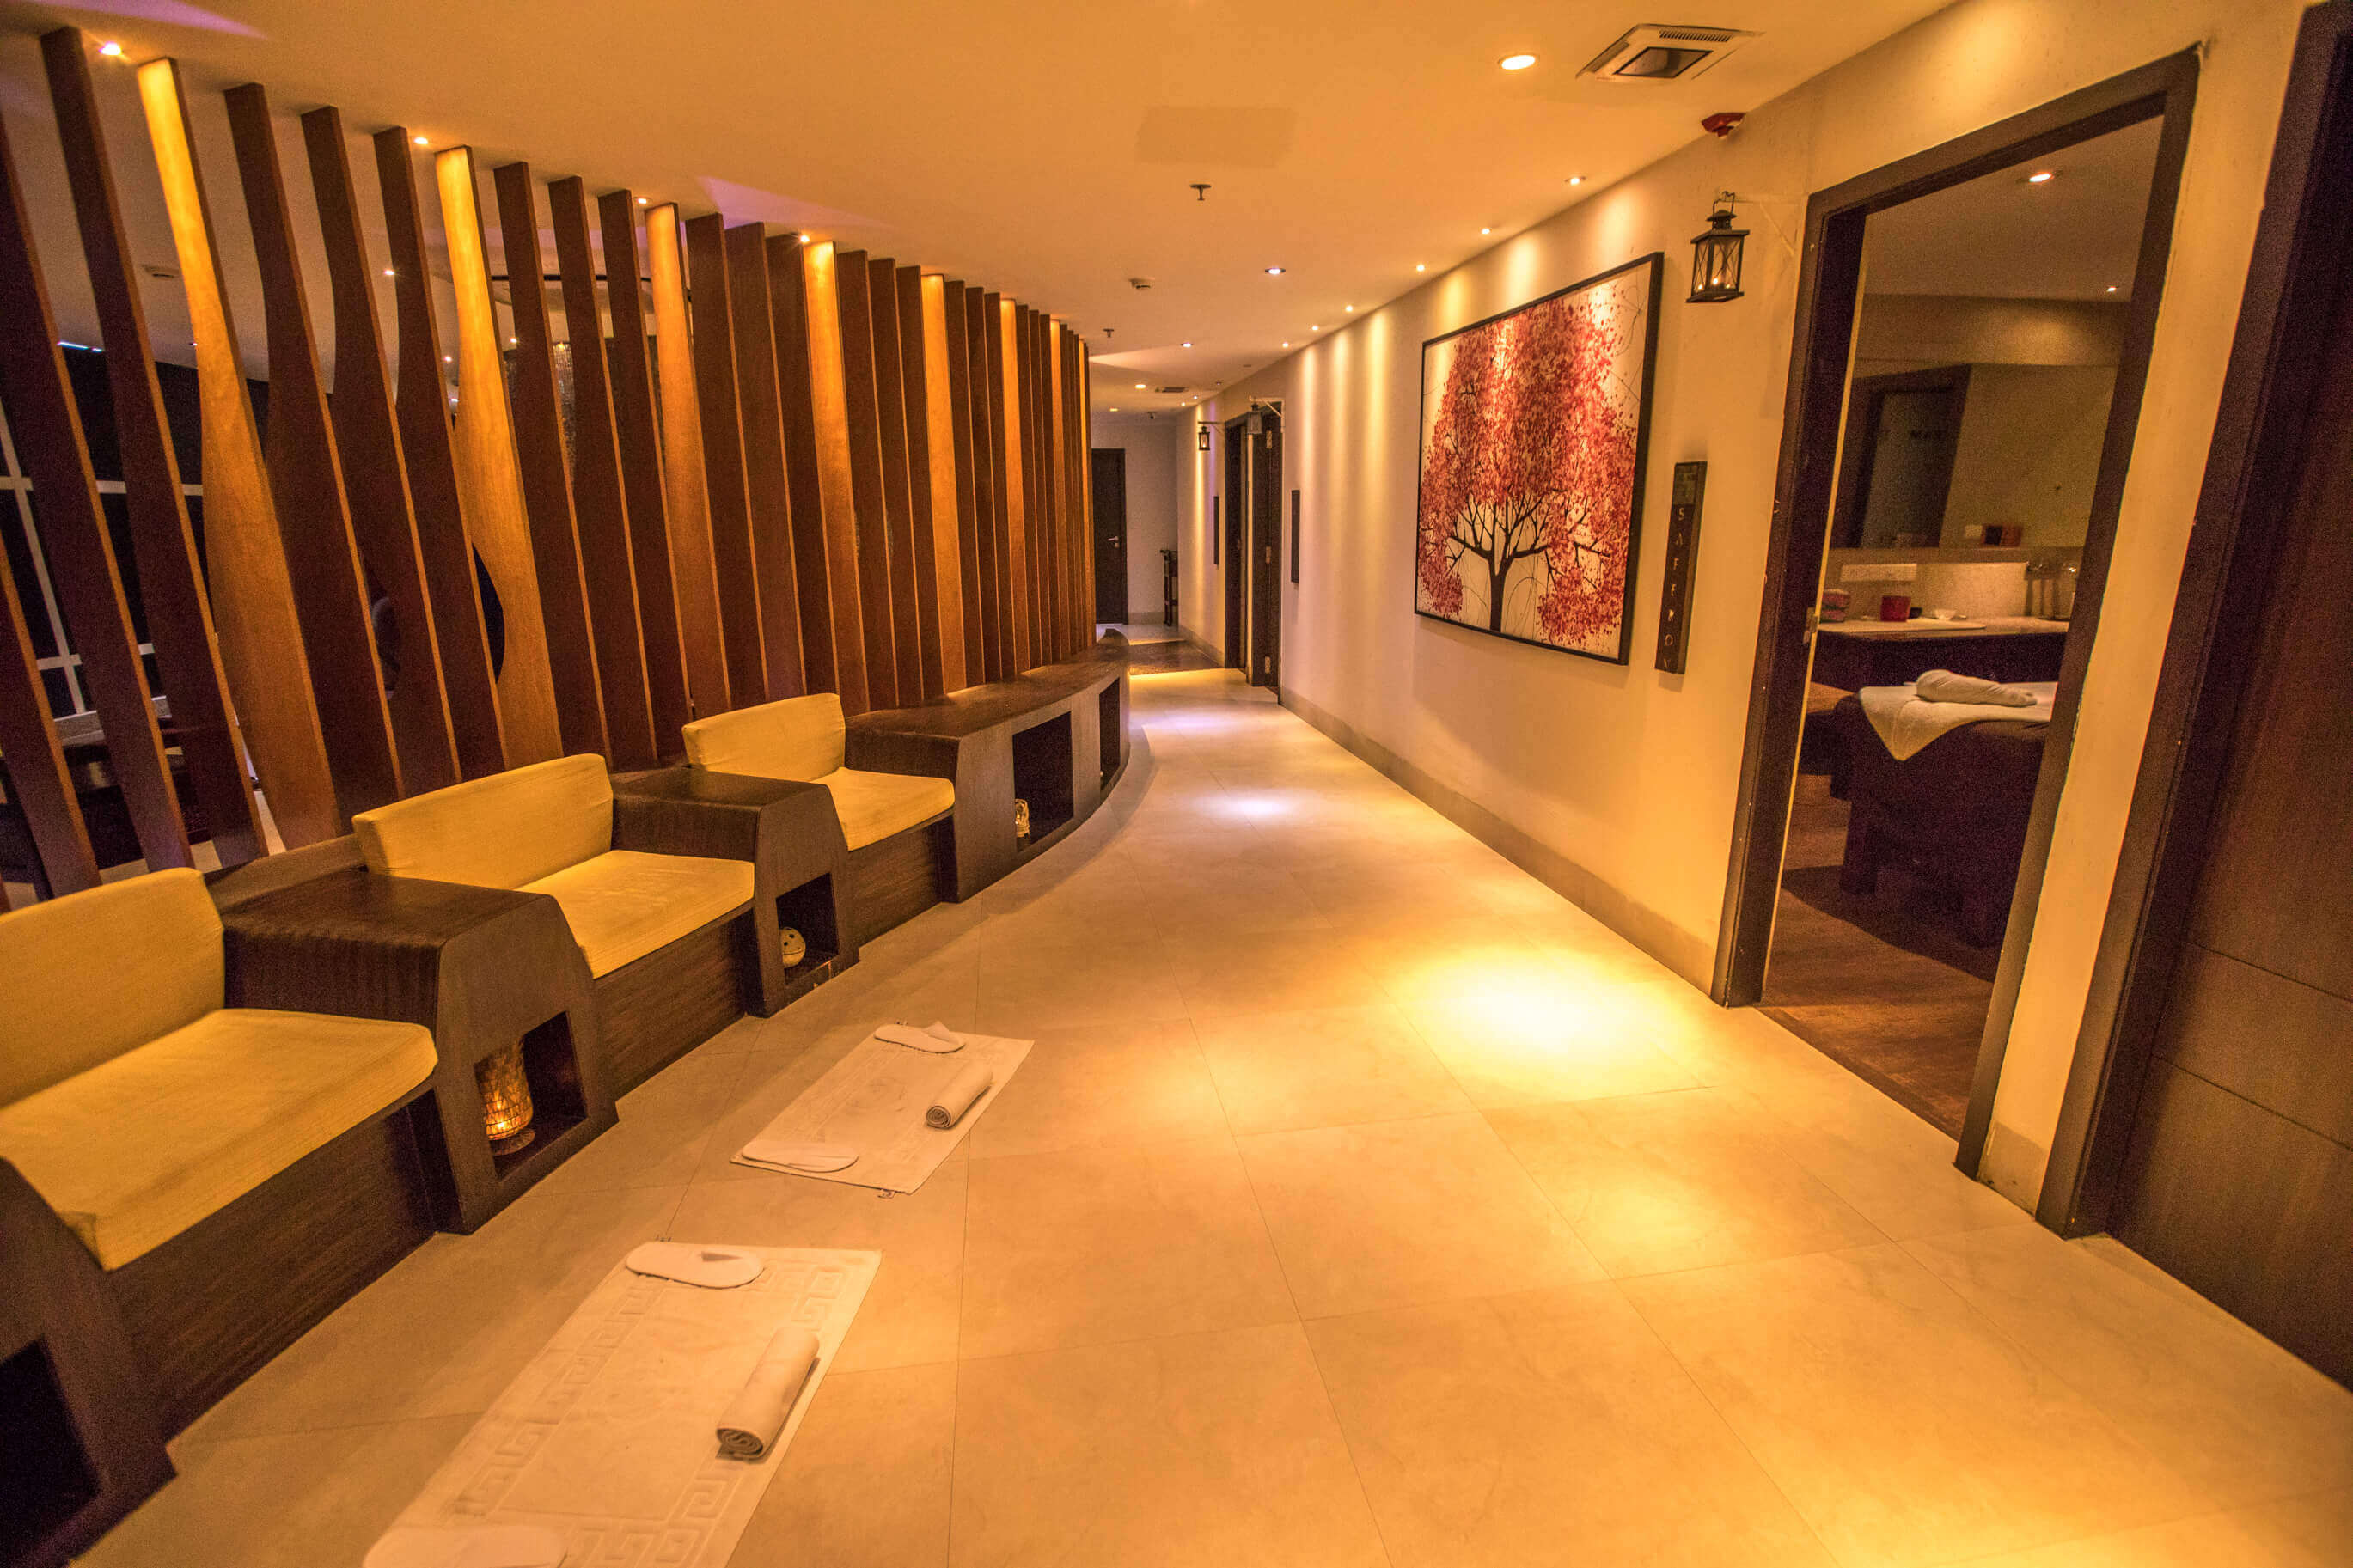 Best Spa in Hyderabad | Full Body Massage | Spa Services ...